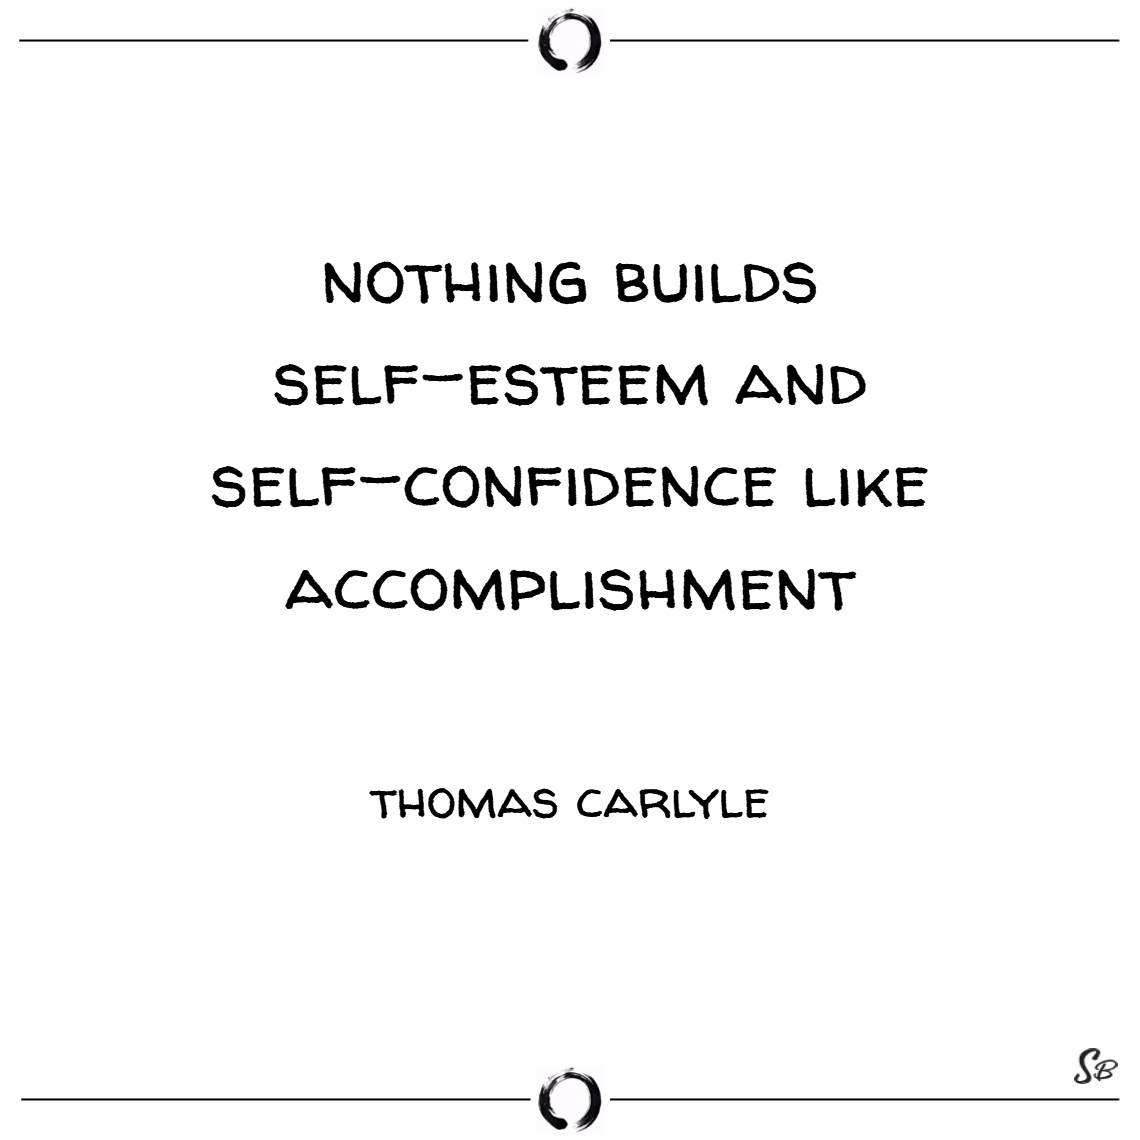 Nothing builds self esteem and self confidence like accomplishment. – thomas carlyle